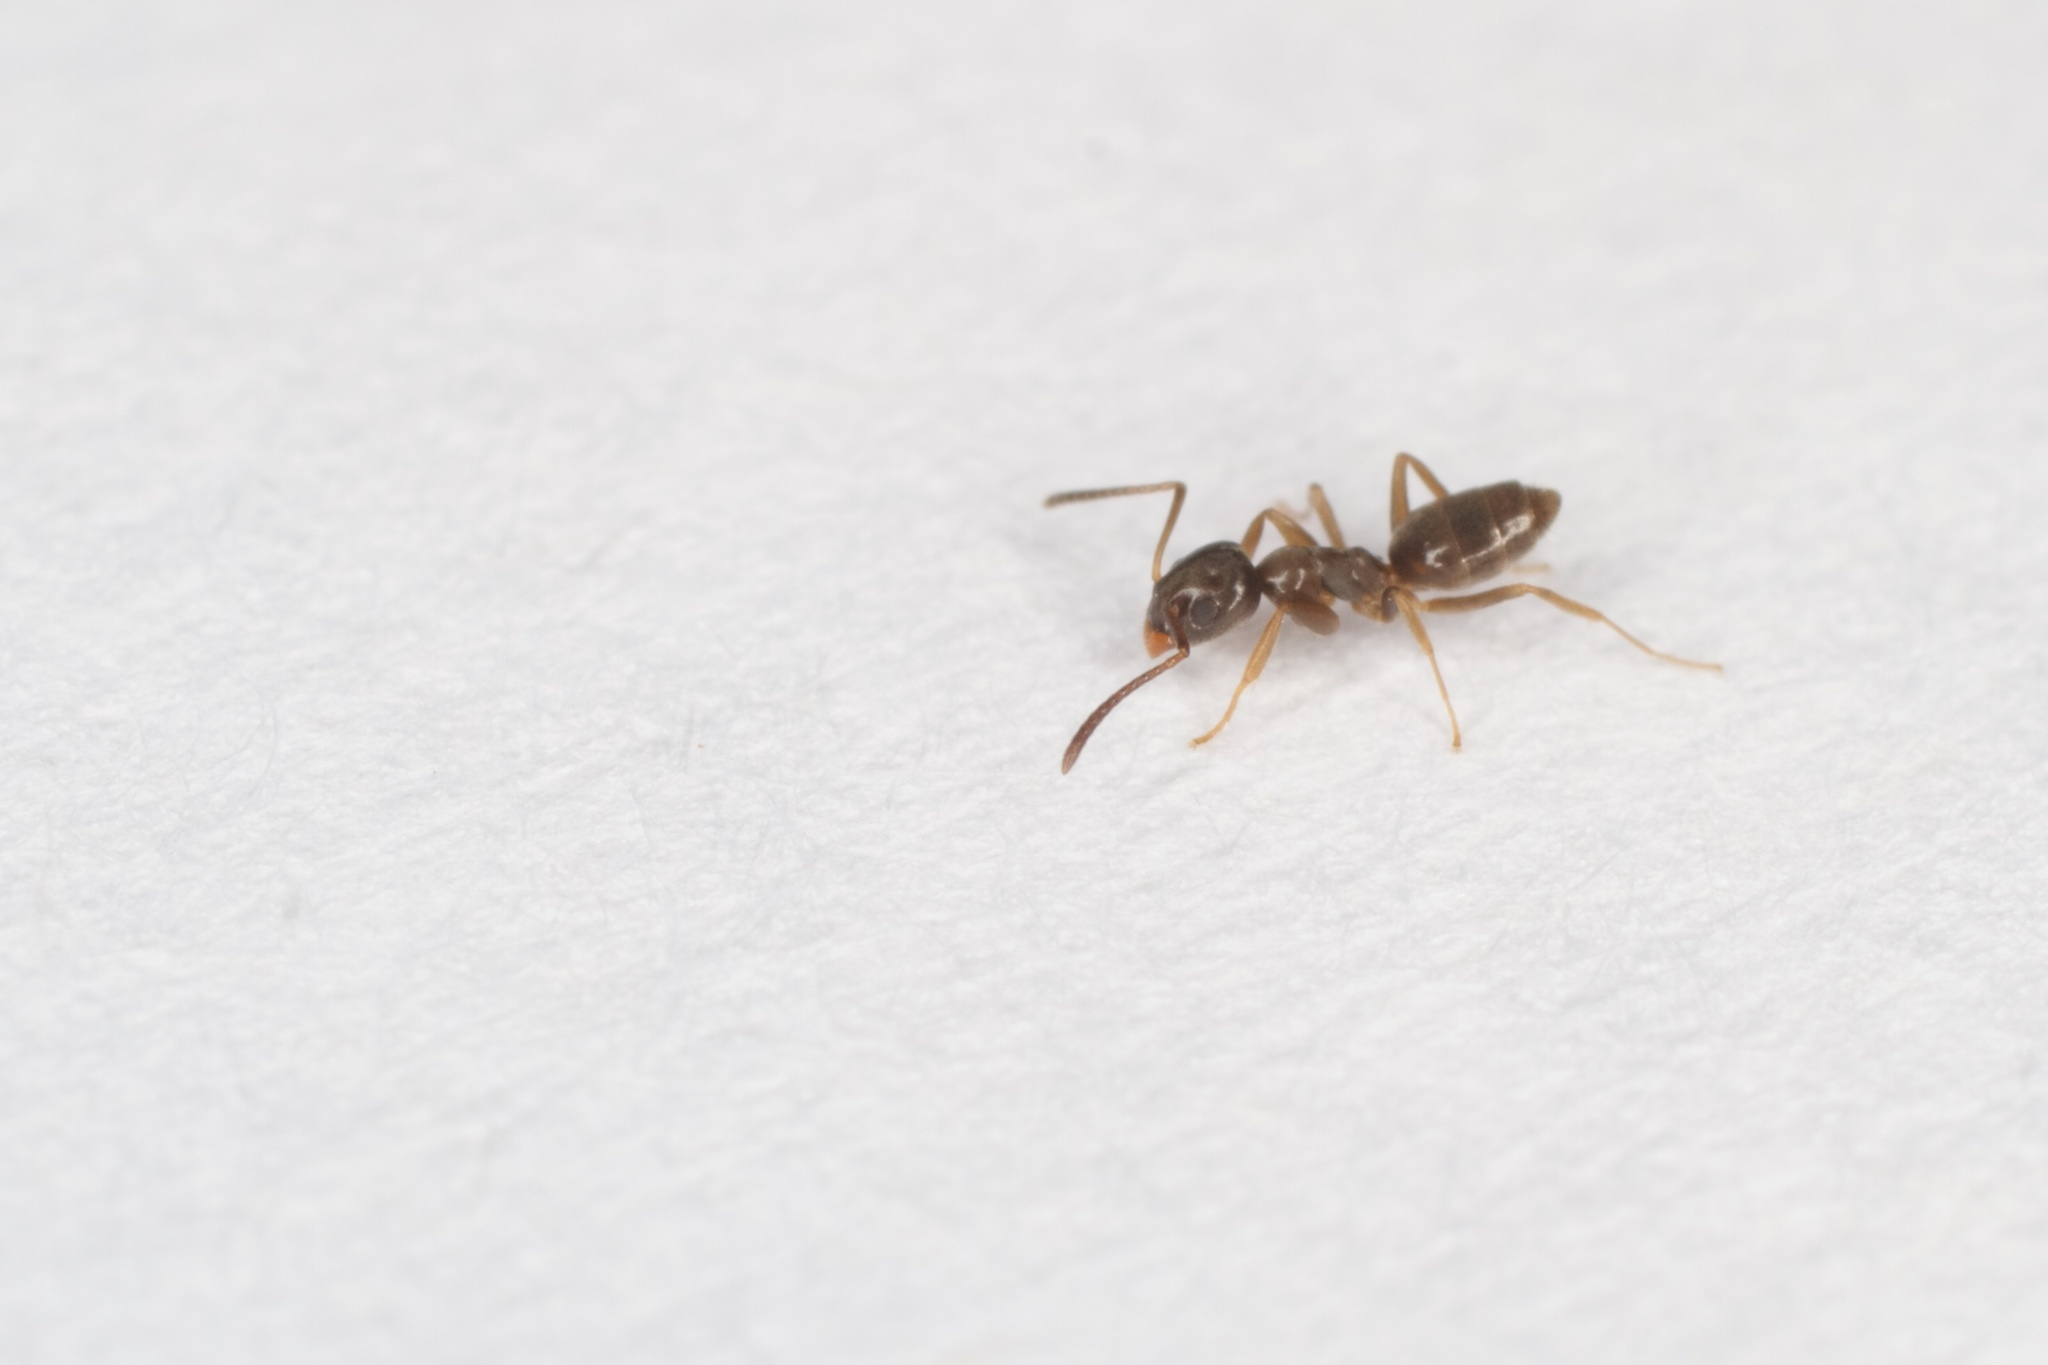 Image of Odorous House Ant